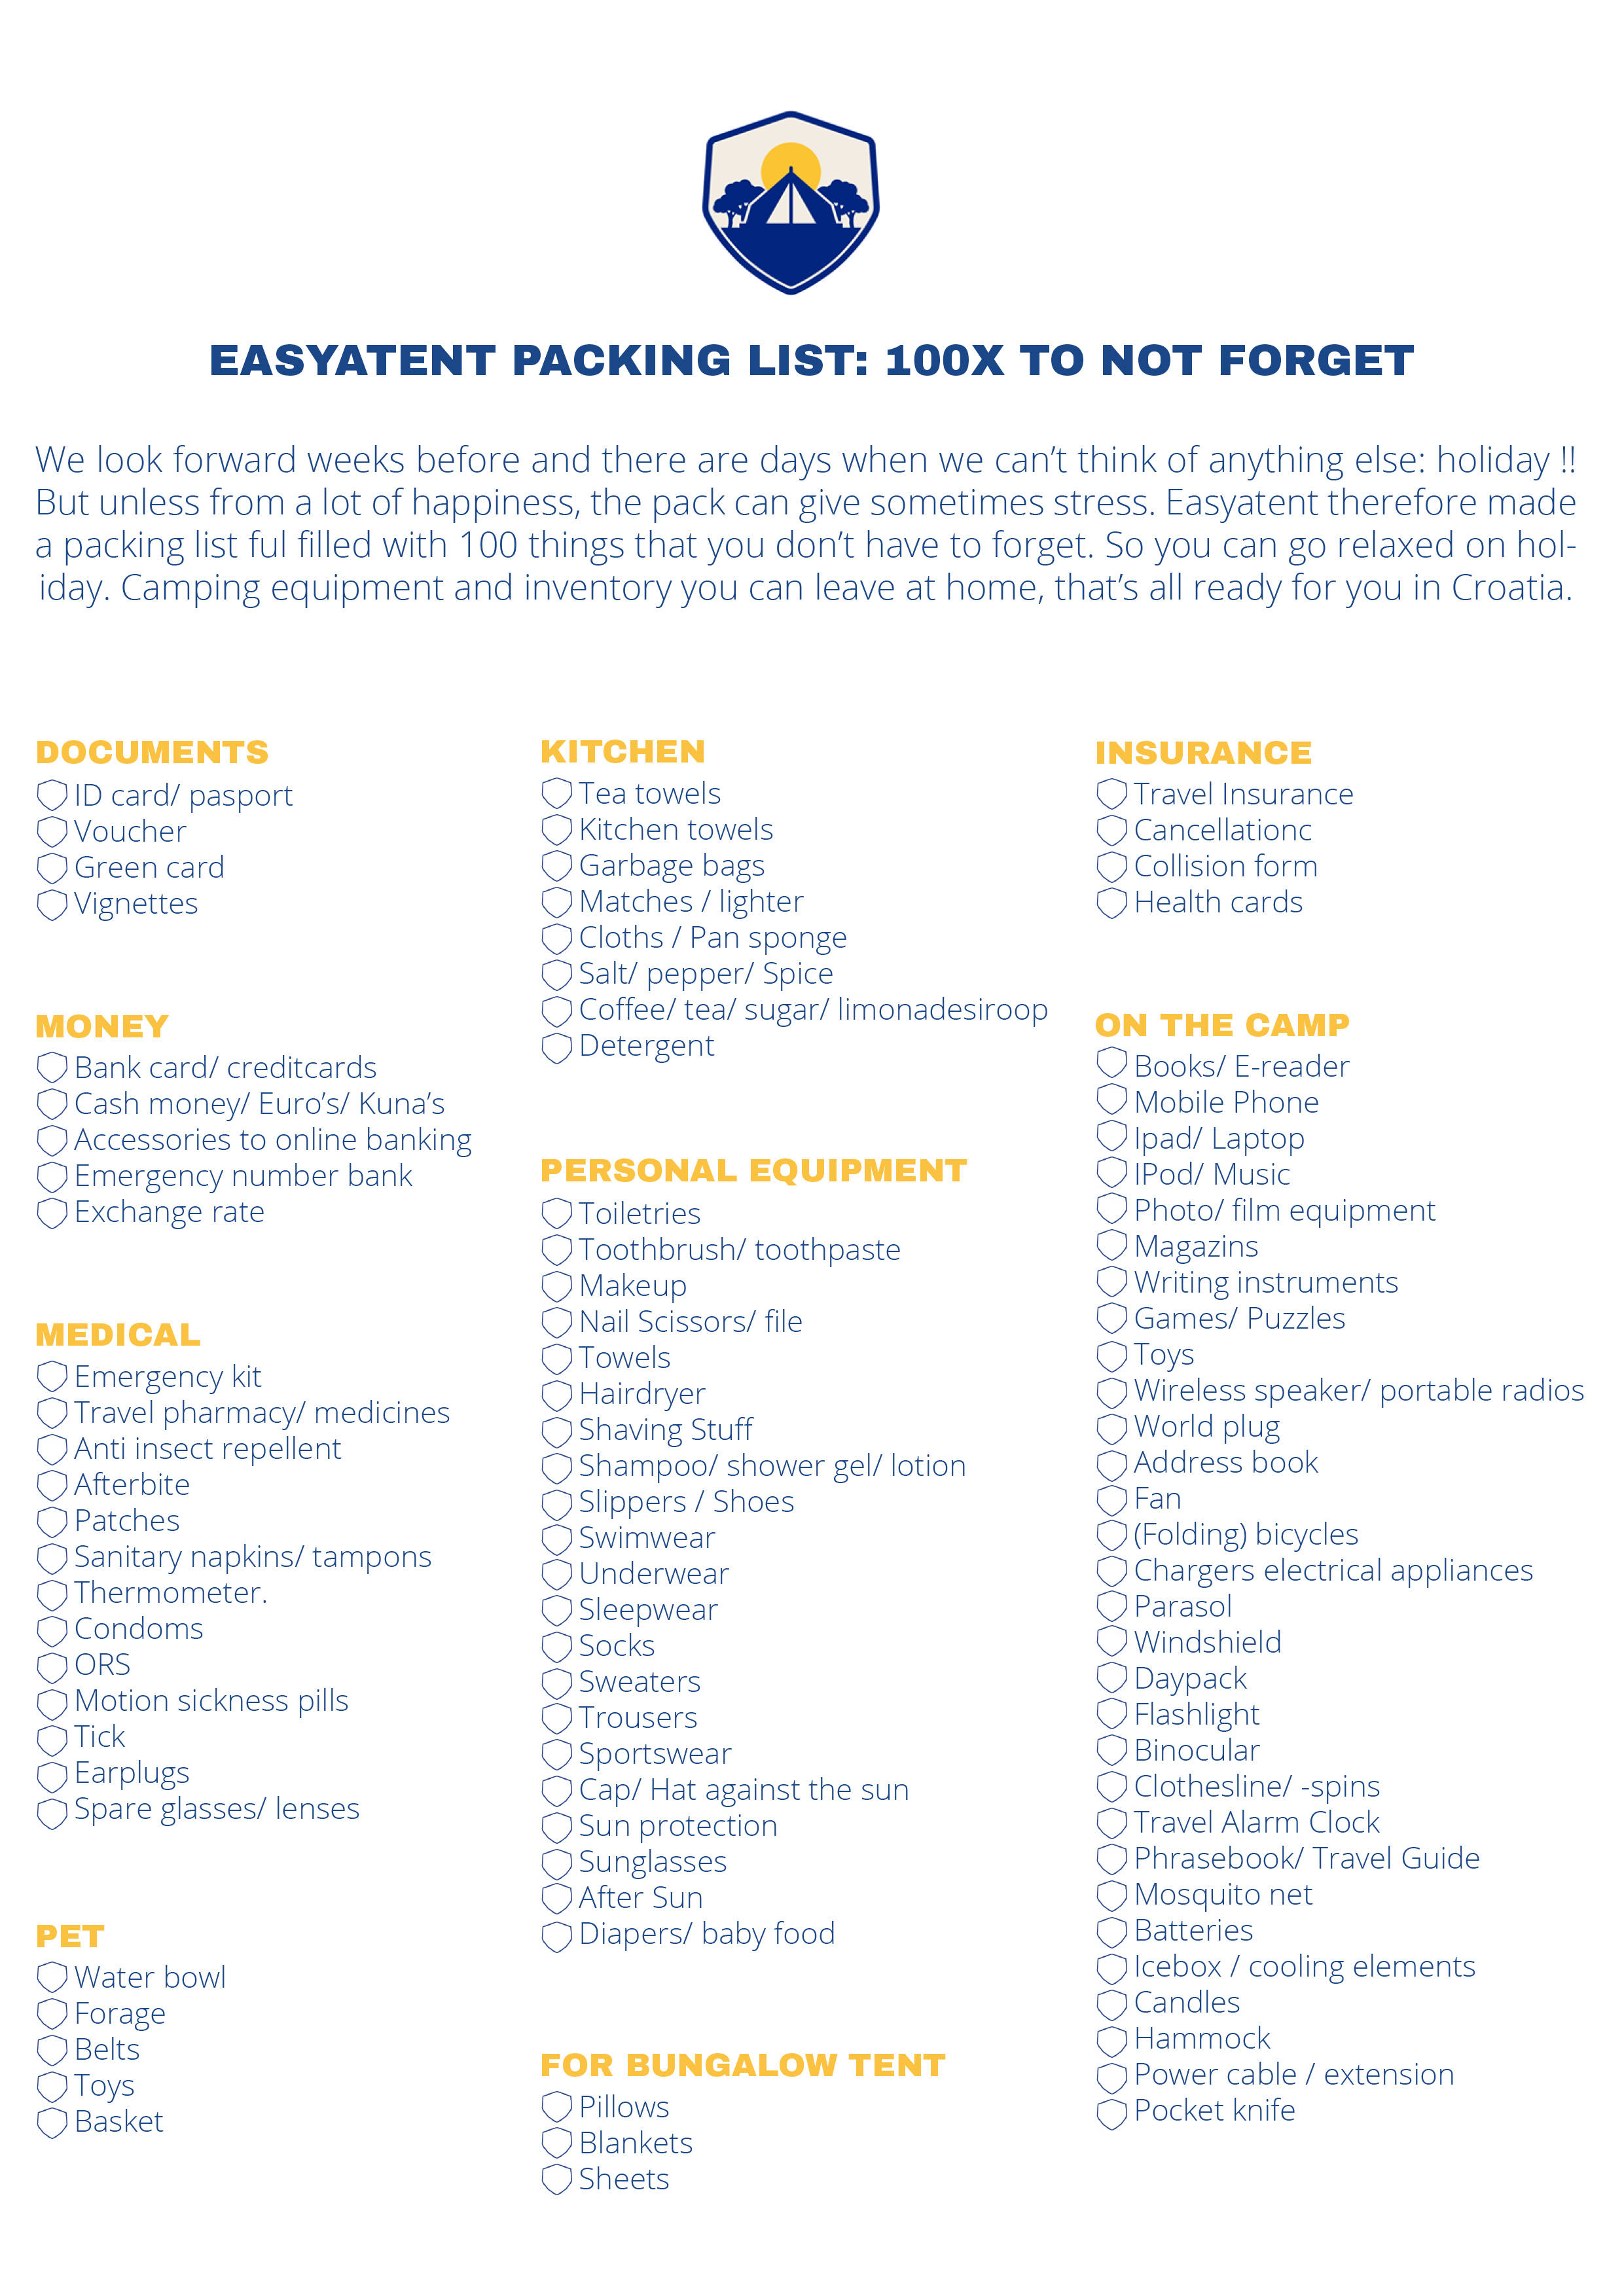 Map and packing list. By clicking on the image you can download and print  the map.